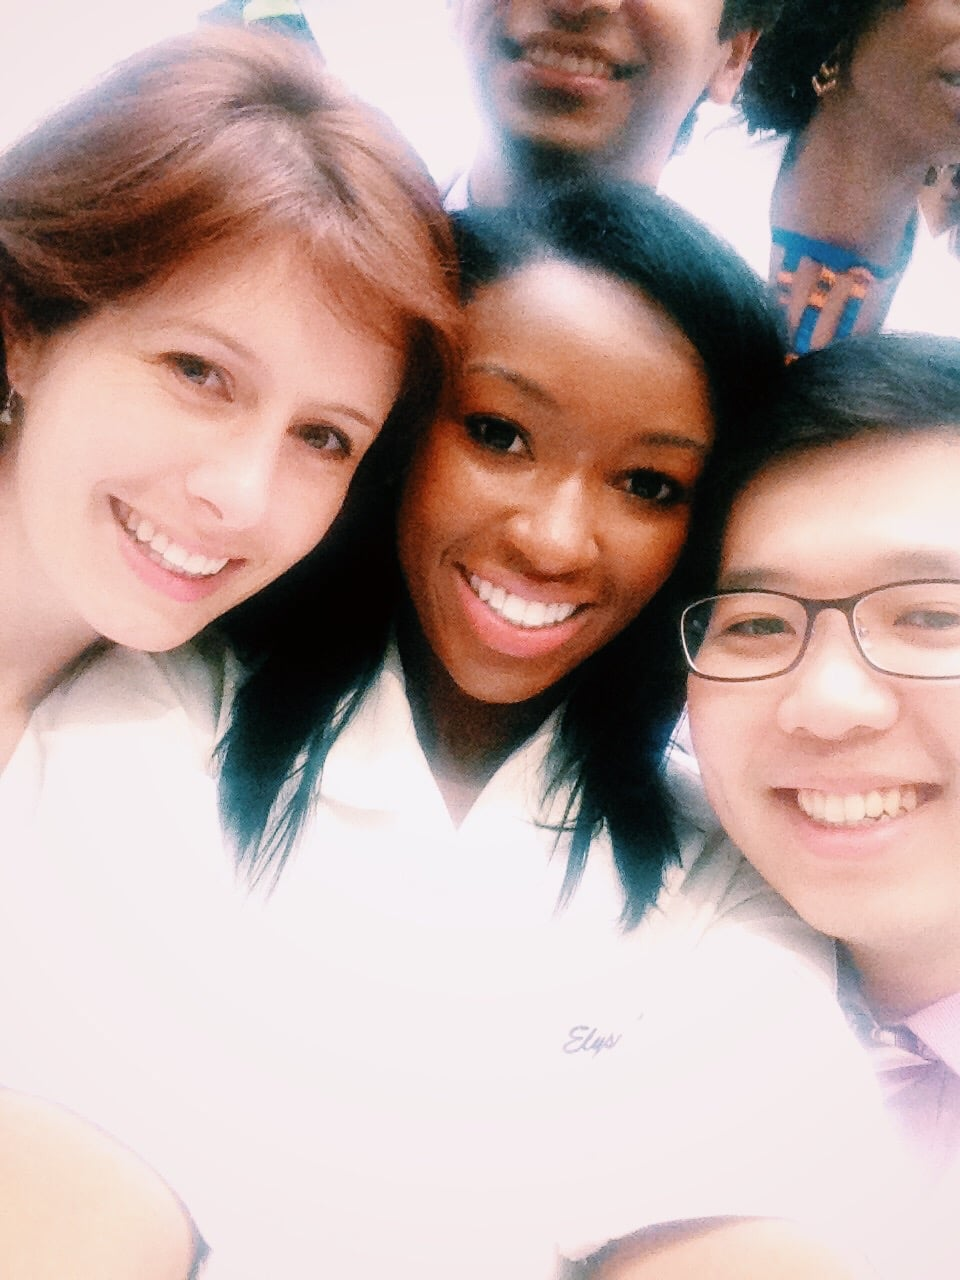 Selfies with two of my best friends while tacking our class picture - Emory School of Medicine Class of 2015